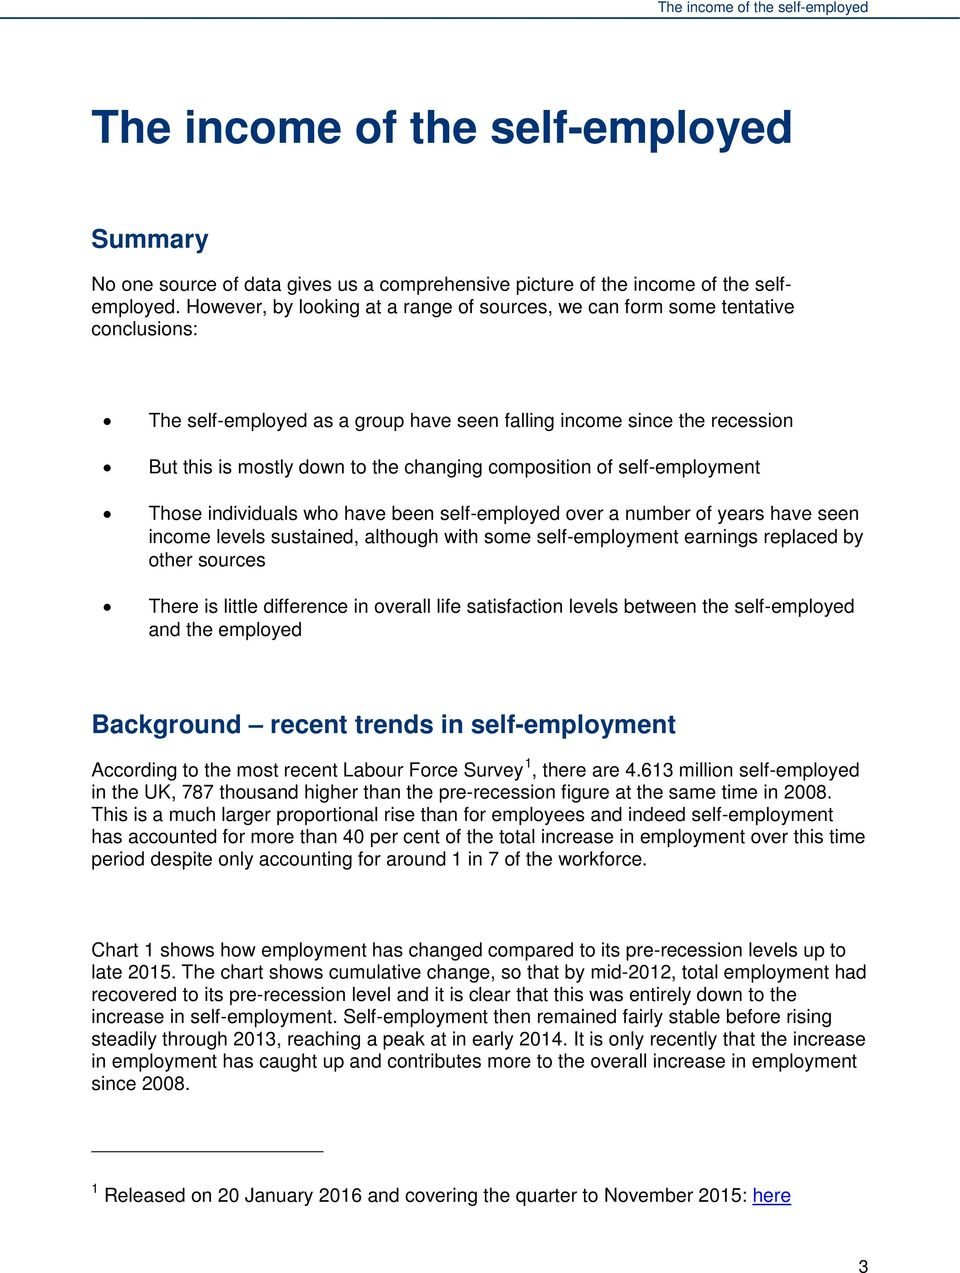 composition of self-employment Those individuals who have been self-employed over a number of years have seen income levels sustained, although with some self-employment earnings replaced by other